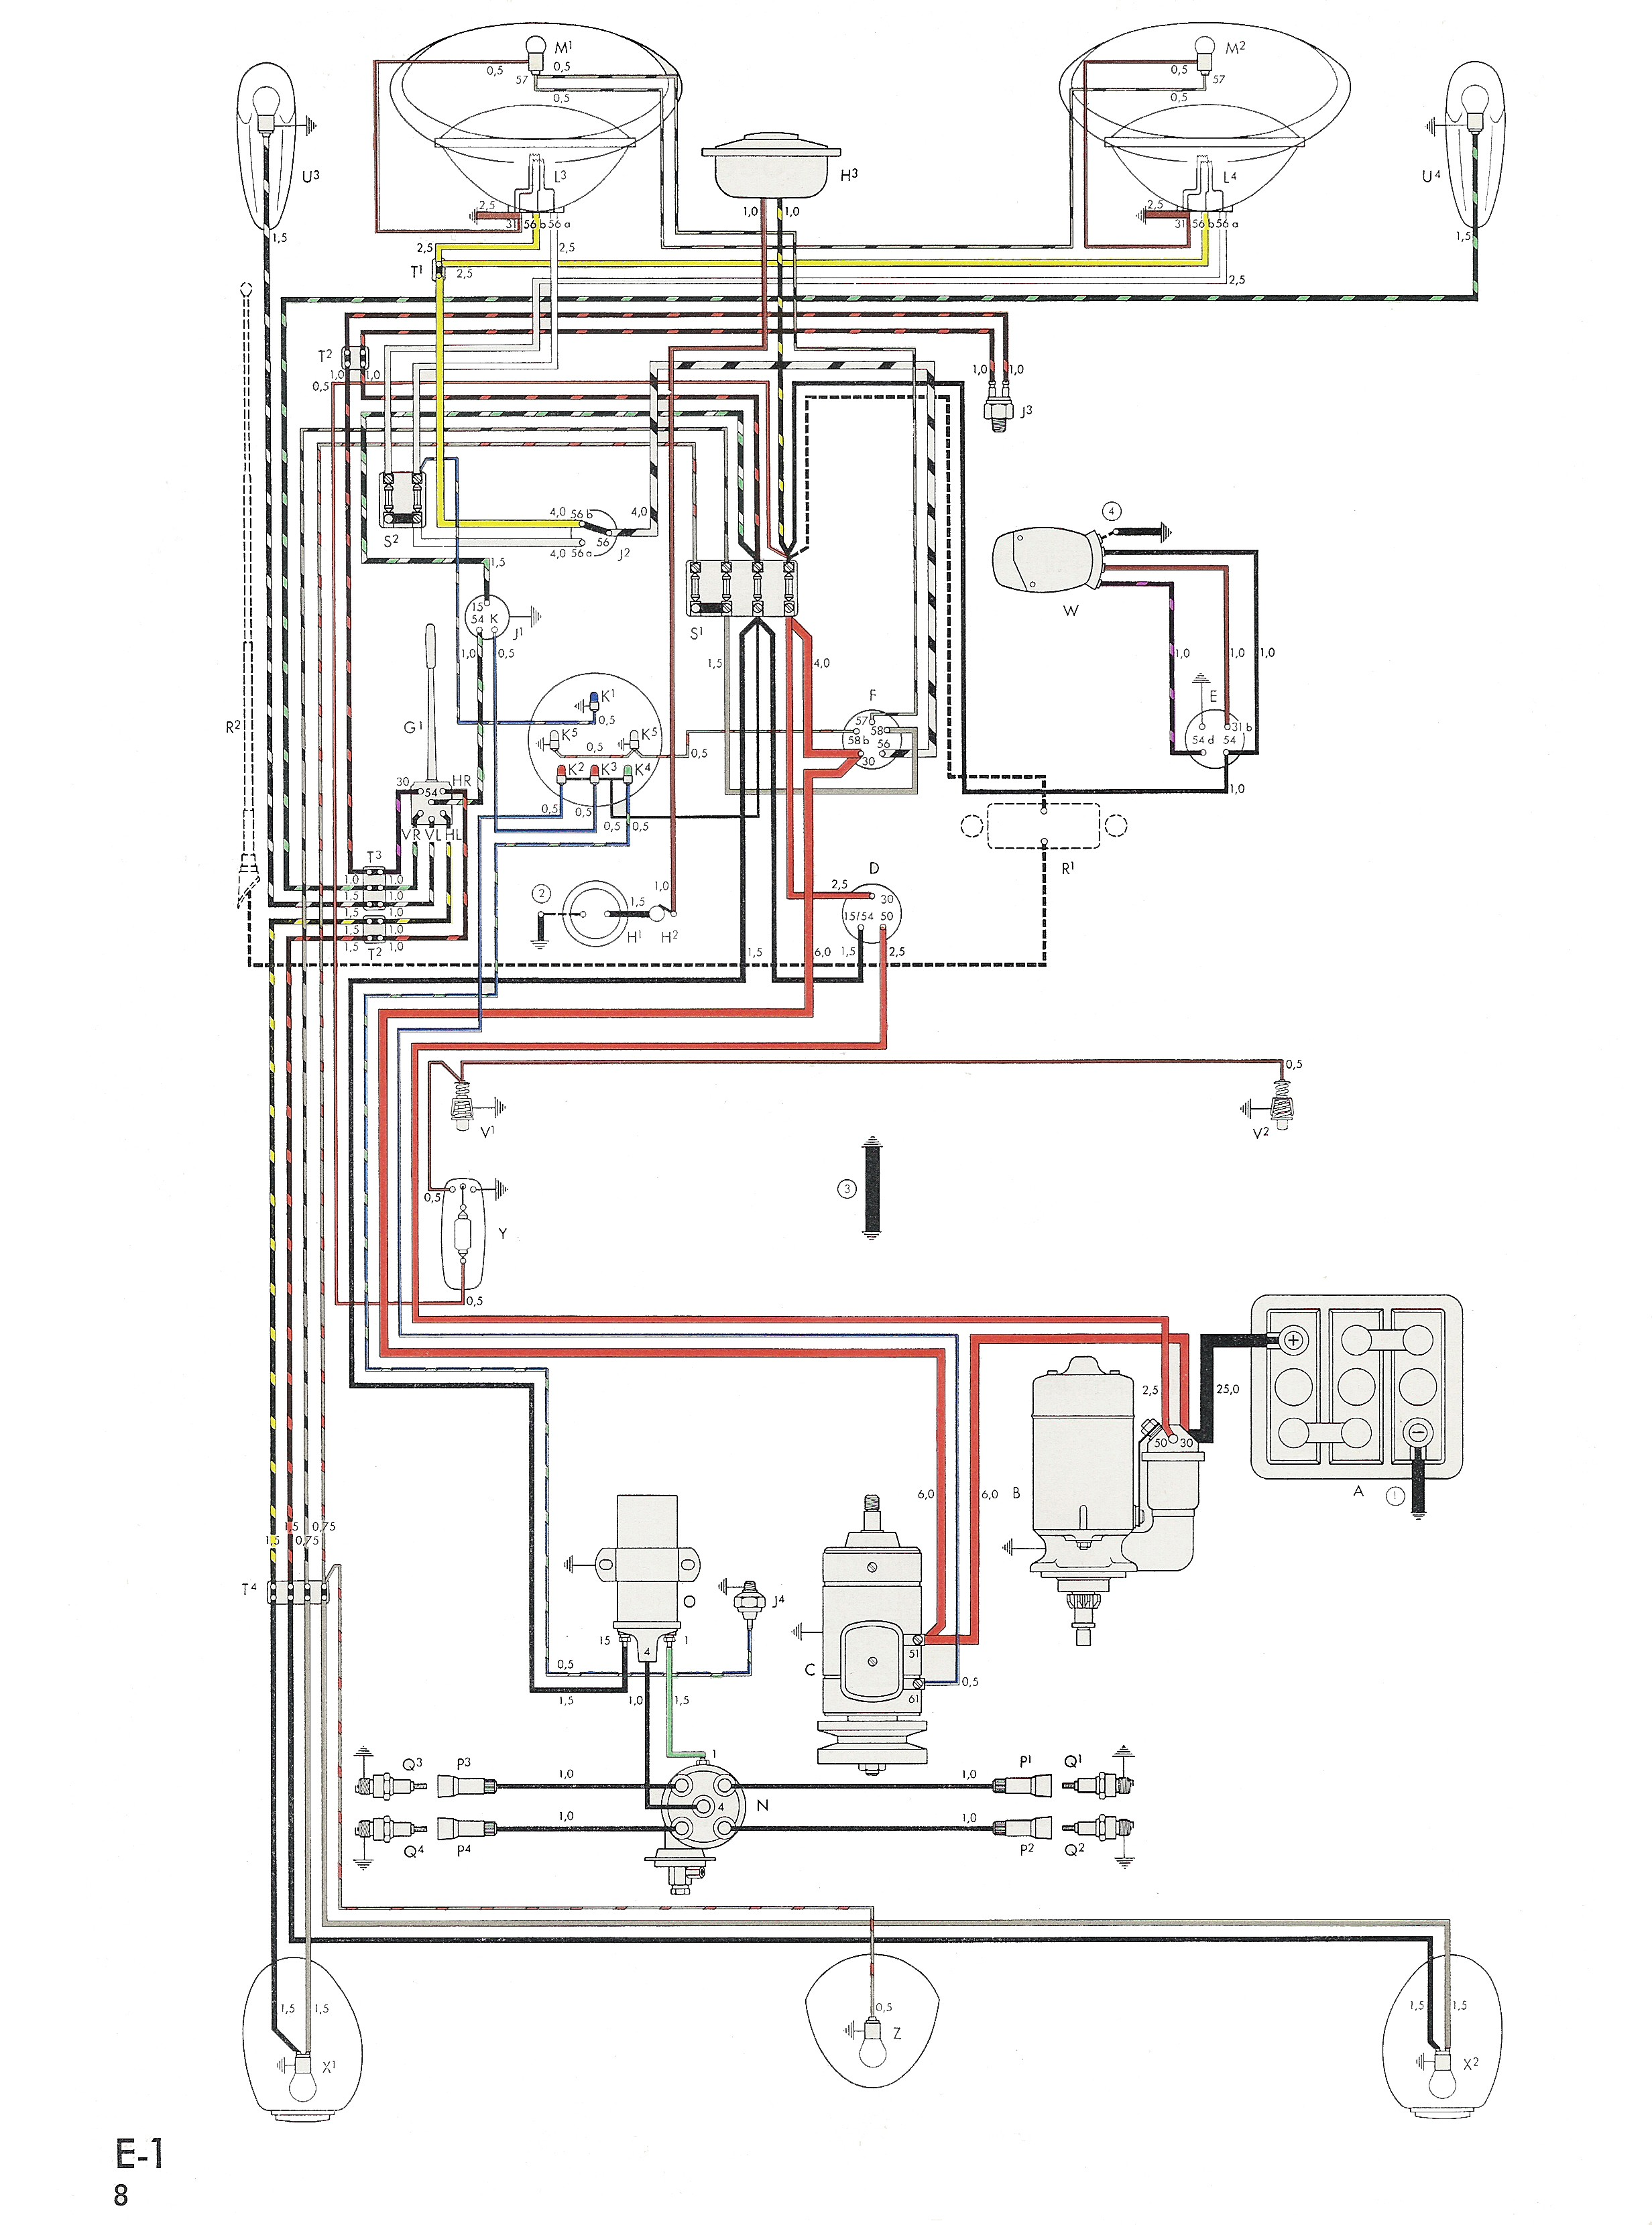 Beetle Engine Diagram Wiring In Color 1964 Vw Bug Bus Info From Of